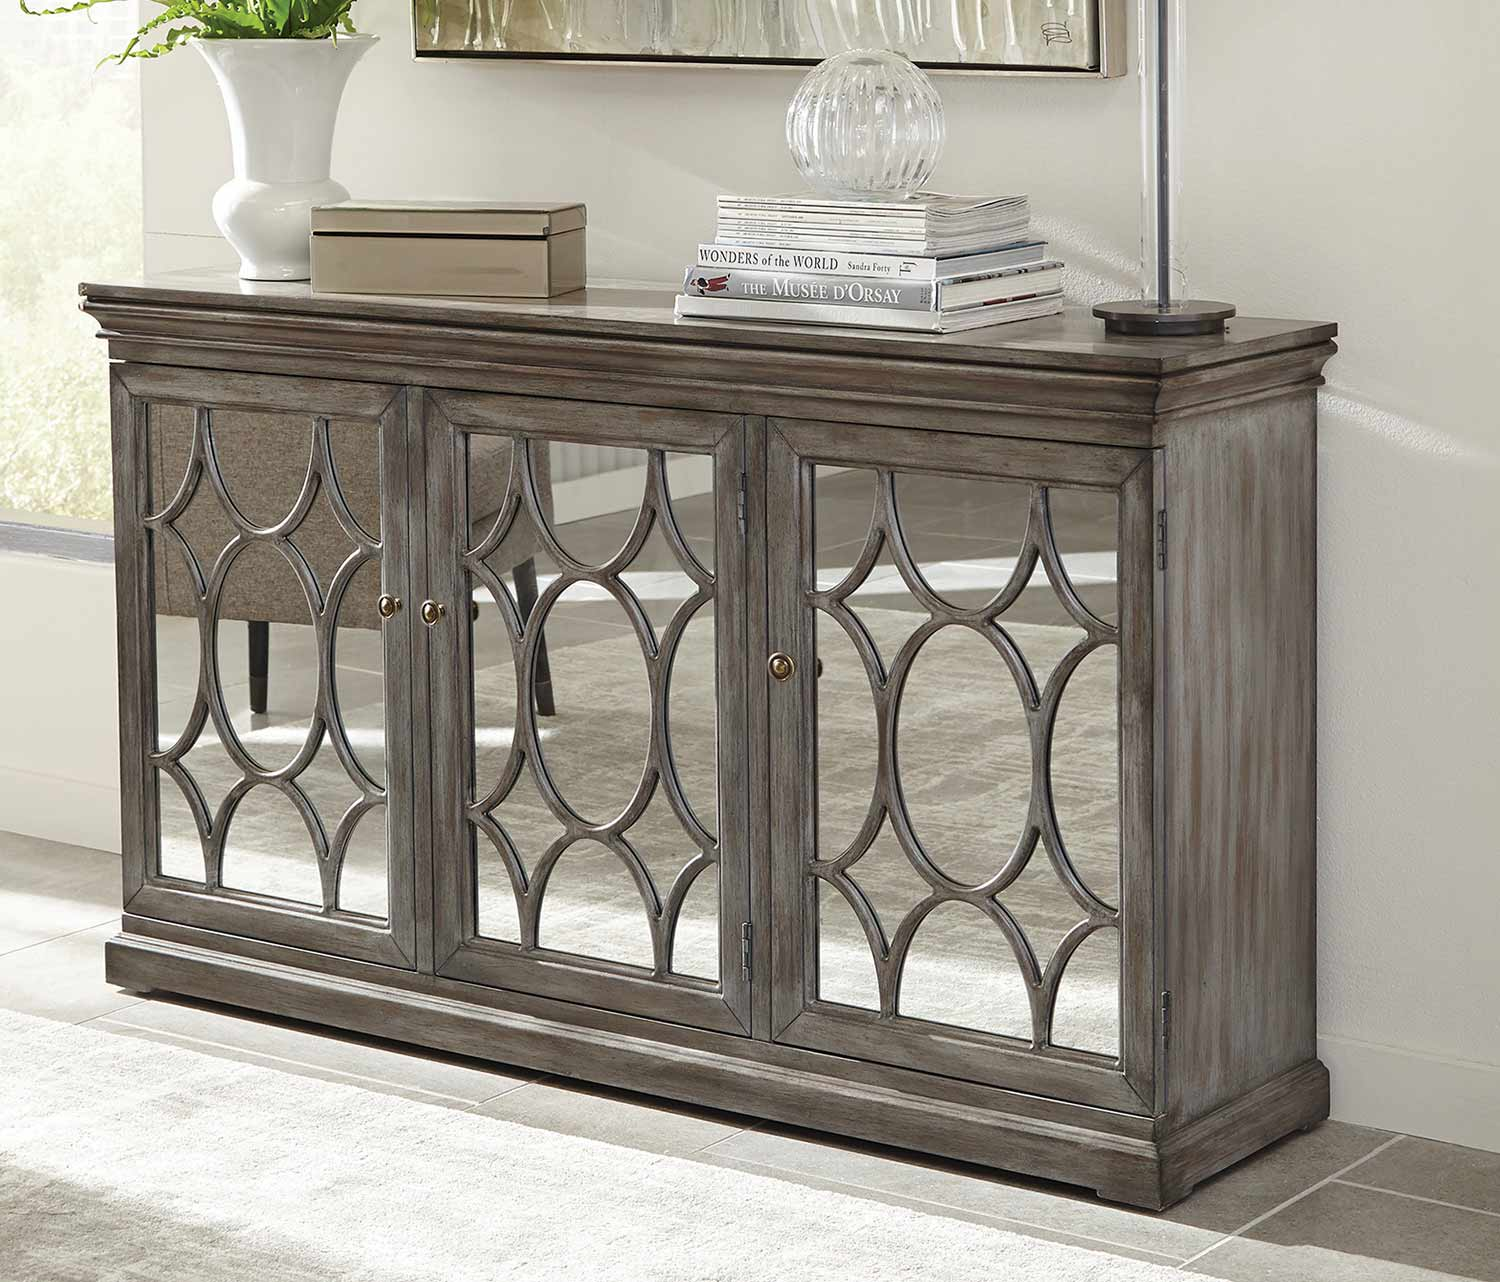 Coaster 950777 Accent Cabinet - Antique Grey/Bronze